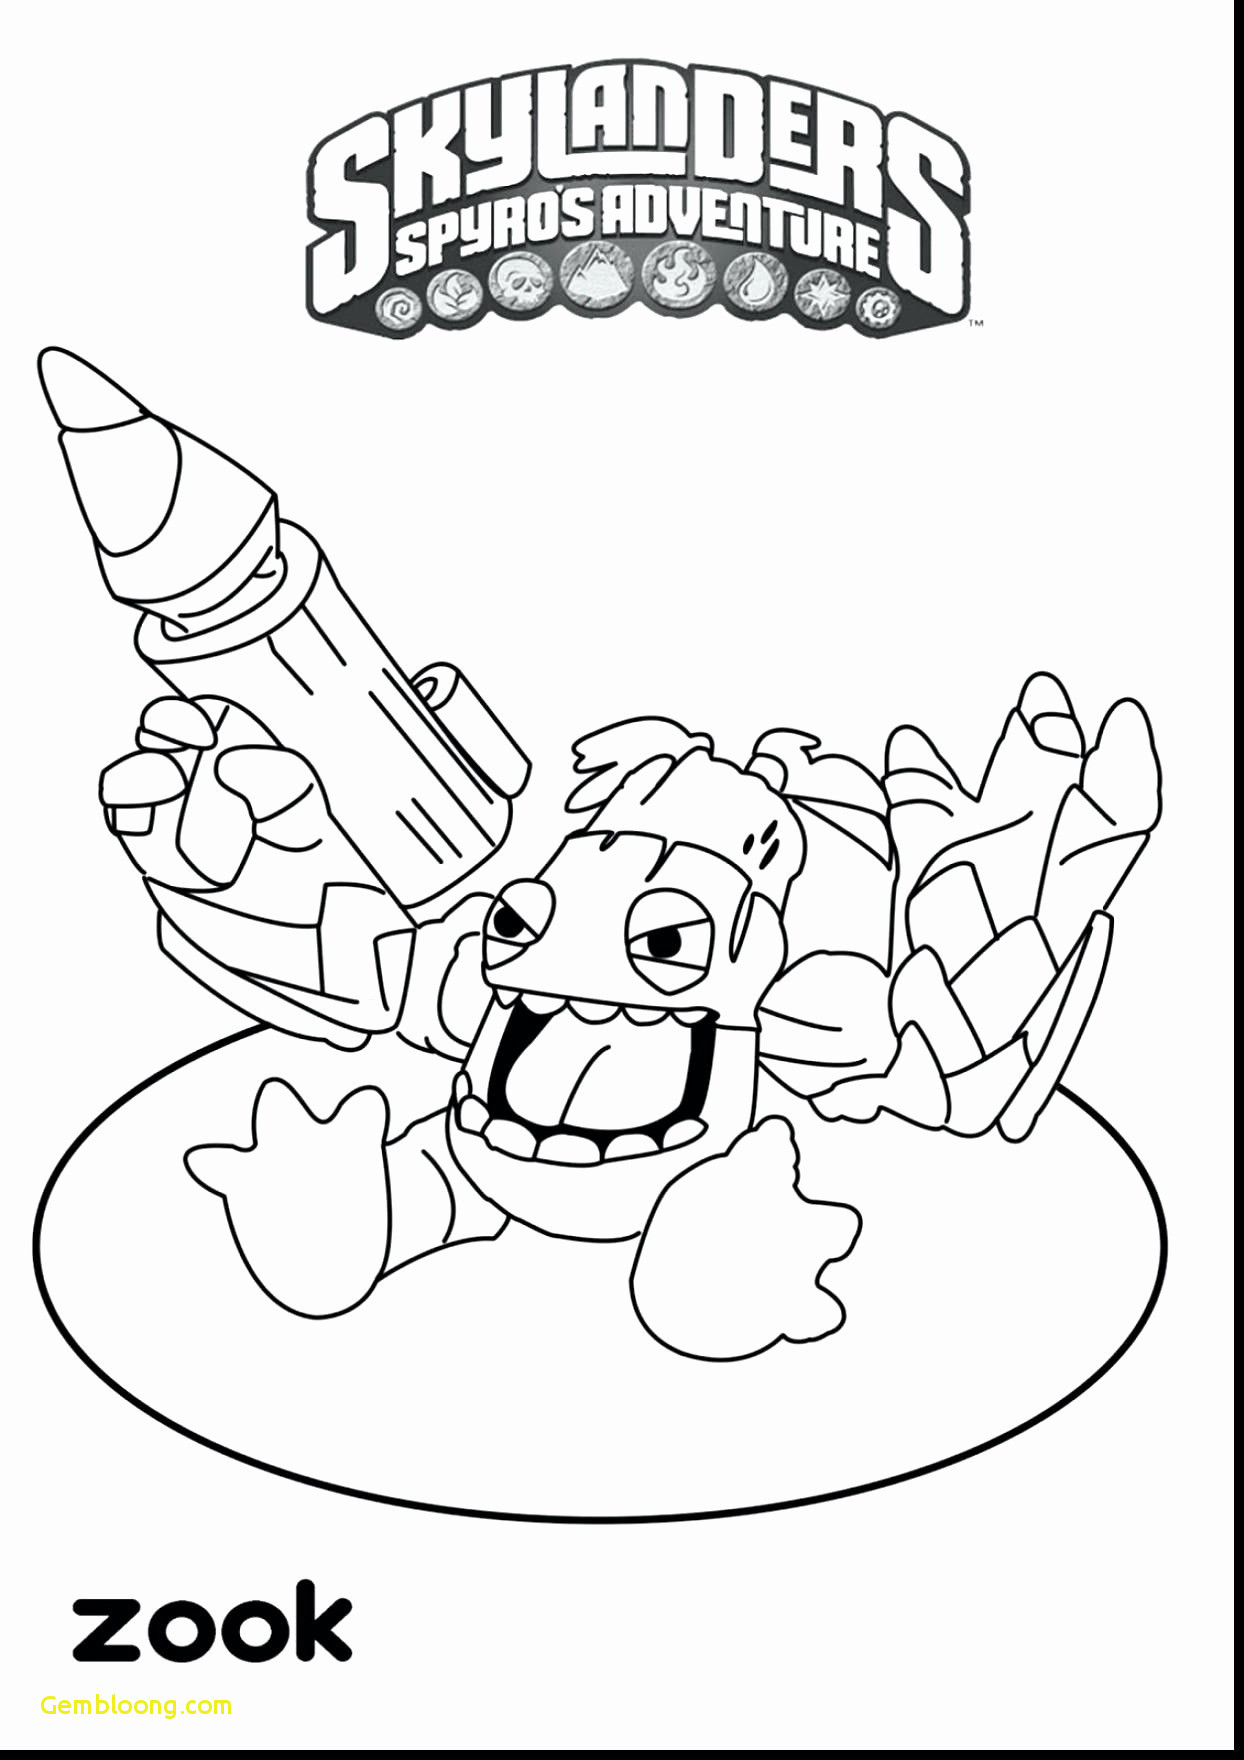 printable bookmark coloring pages Collection-Cthulhu Coloring Pages Awesome Coloring Pages Printables Unique Coloring Printables 0d – Fun Time s 6-l